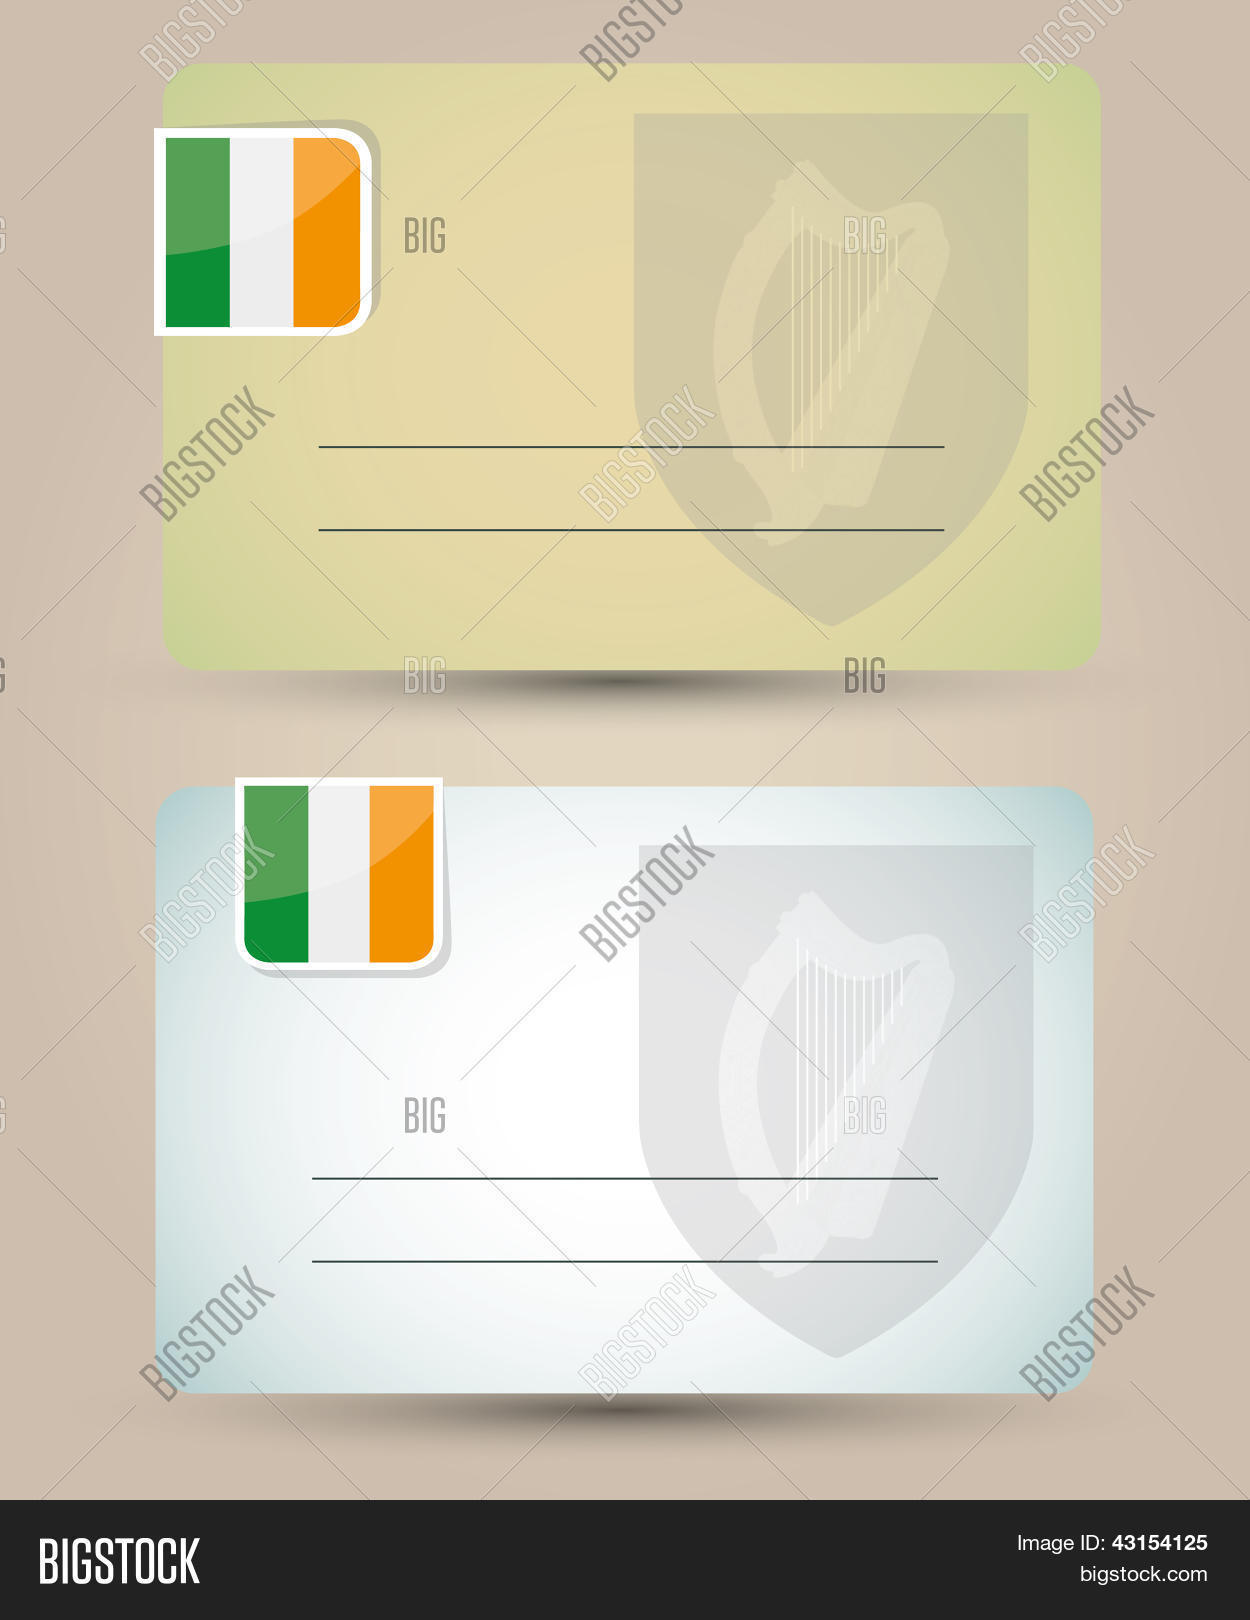 Business card flag vector photo free trial bigstock business card with flag and coat of arms of ireland reheart Gallery